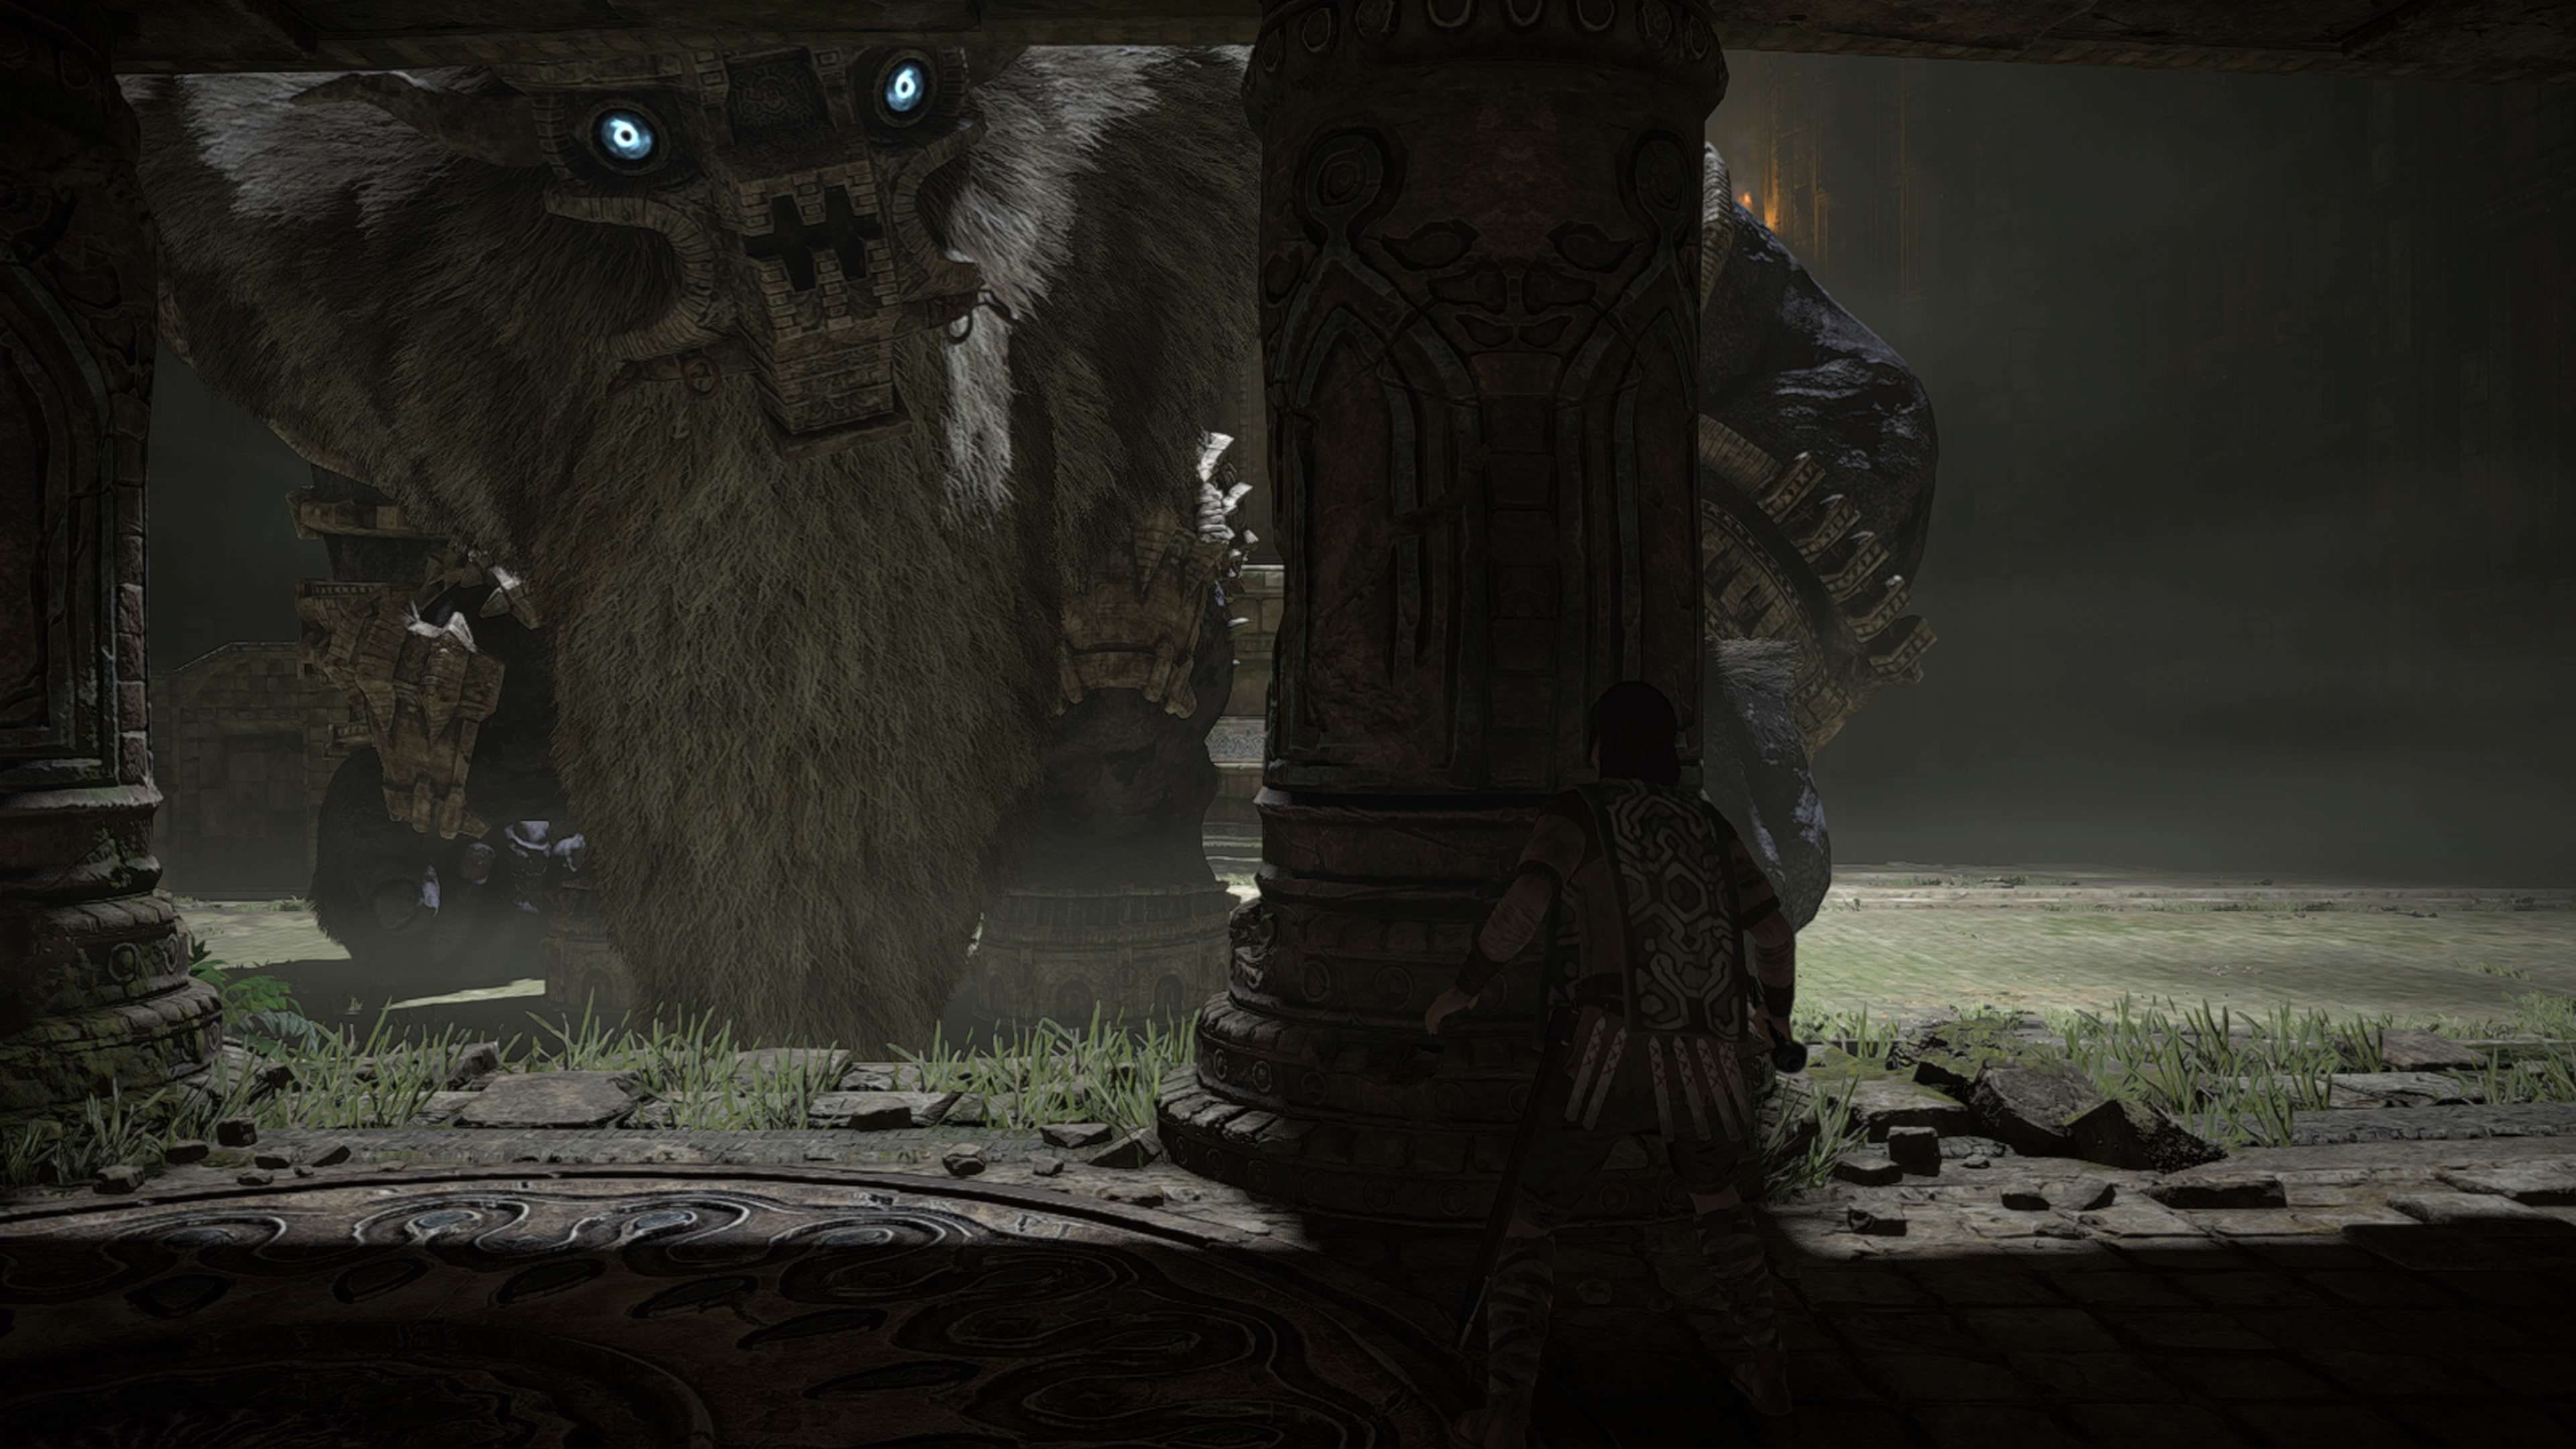 shadow_of_the_colossus_20180203142536.jpg